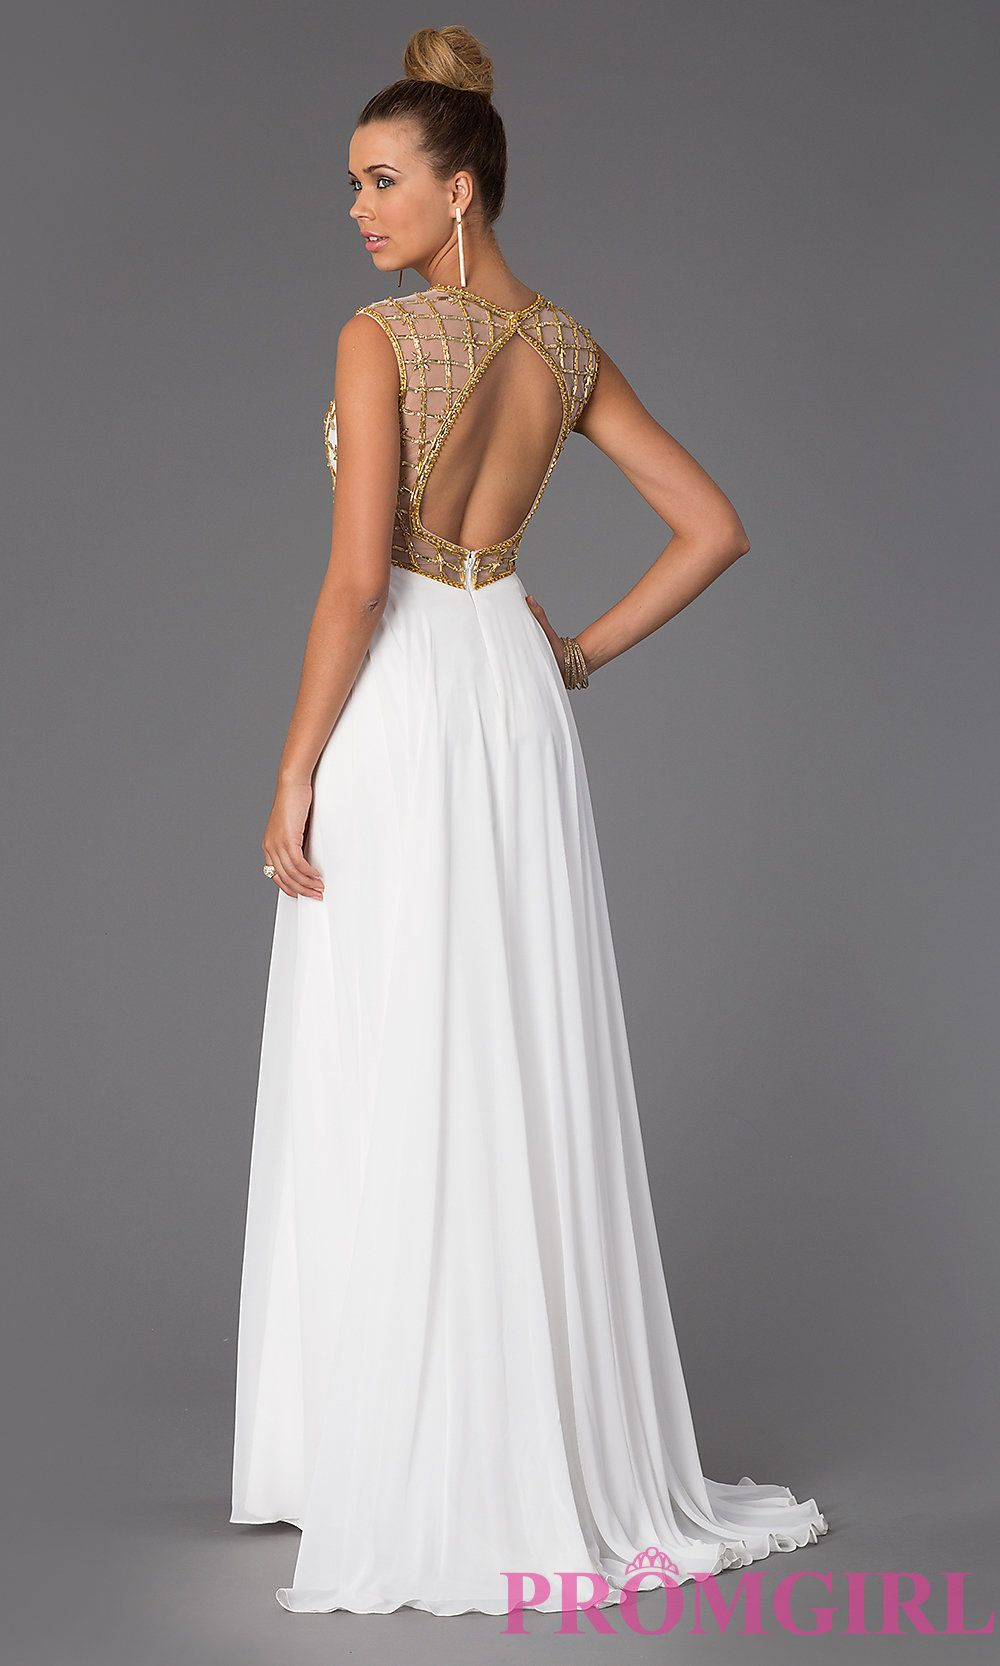 Image Of High Neck Floor Length Prom Dress Style Cd 1103 Front